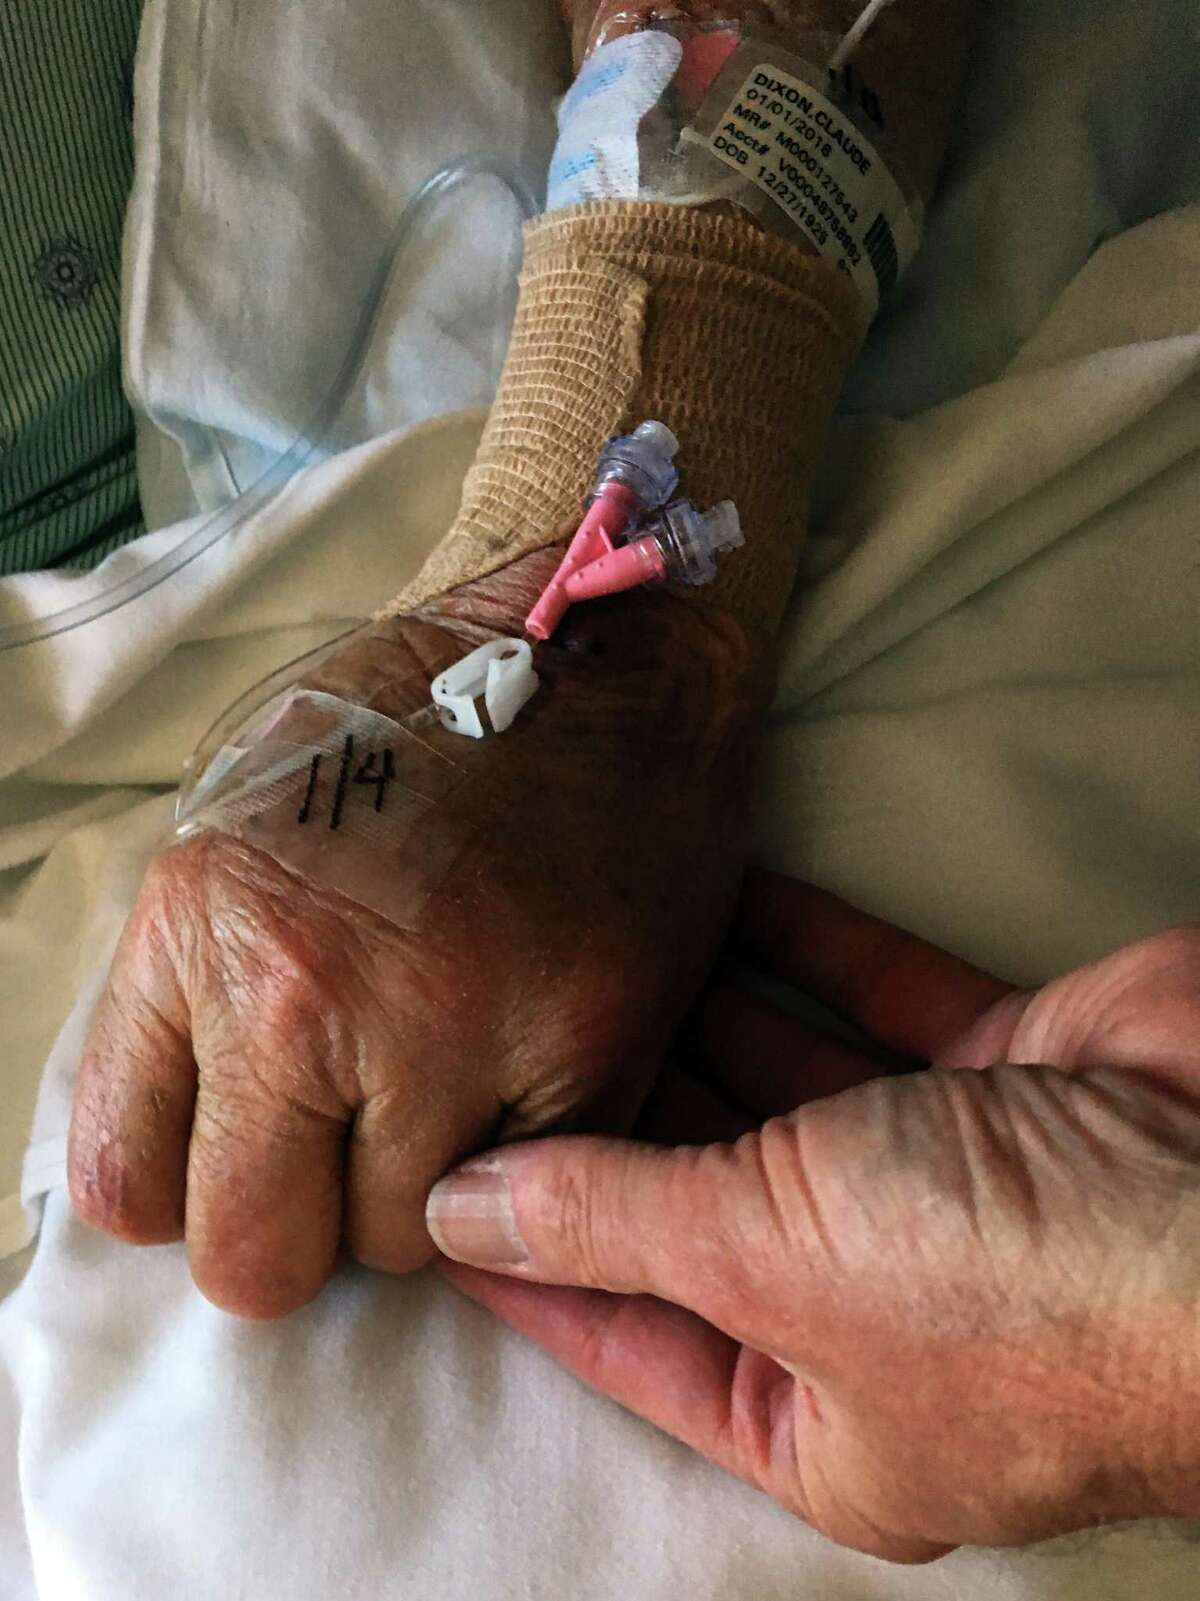 Hearst Connecticut Media reporter and columnist Ken Dixon holds his father's hand at Stamford Hospital. Claude Dixon, who died at 92 on Jan. 7, 2018, served in the U.S. Navy during World War II, taught in Stamford public schools and worked as a journalist for WSTC radio in Stamford and the Bridgeport Post and The Telegram.